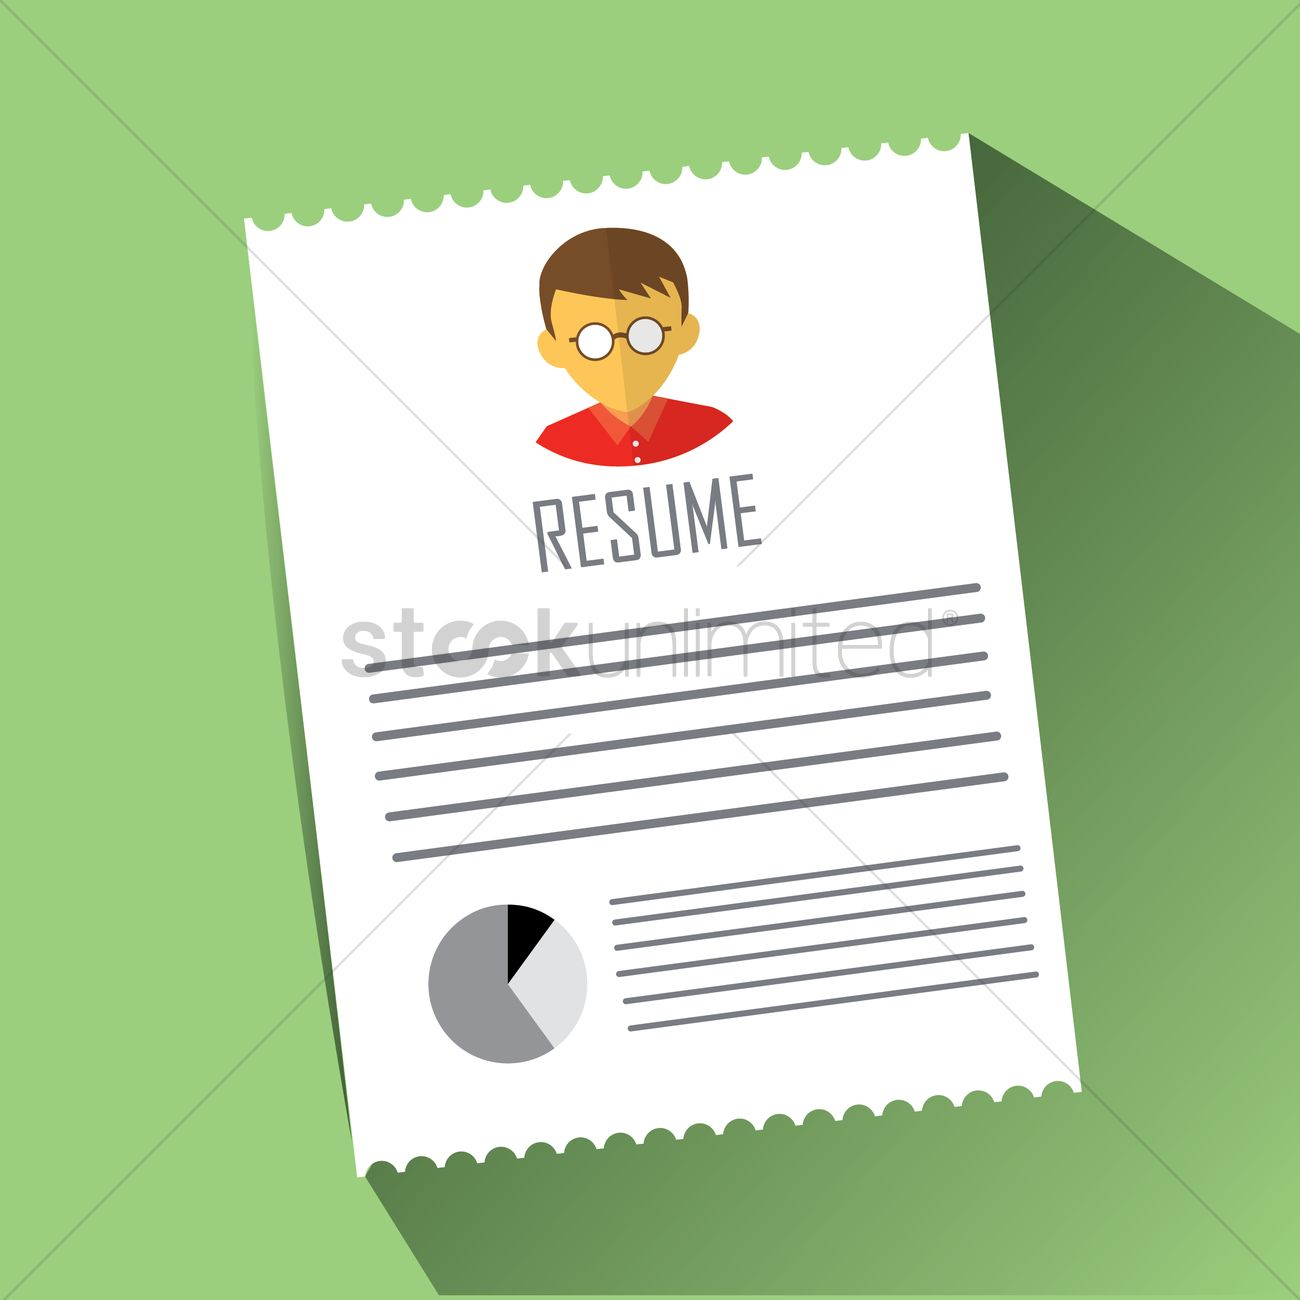 Resume Vector Image 1409160 Stockunlimited